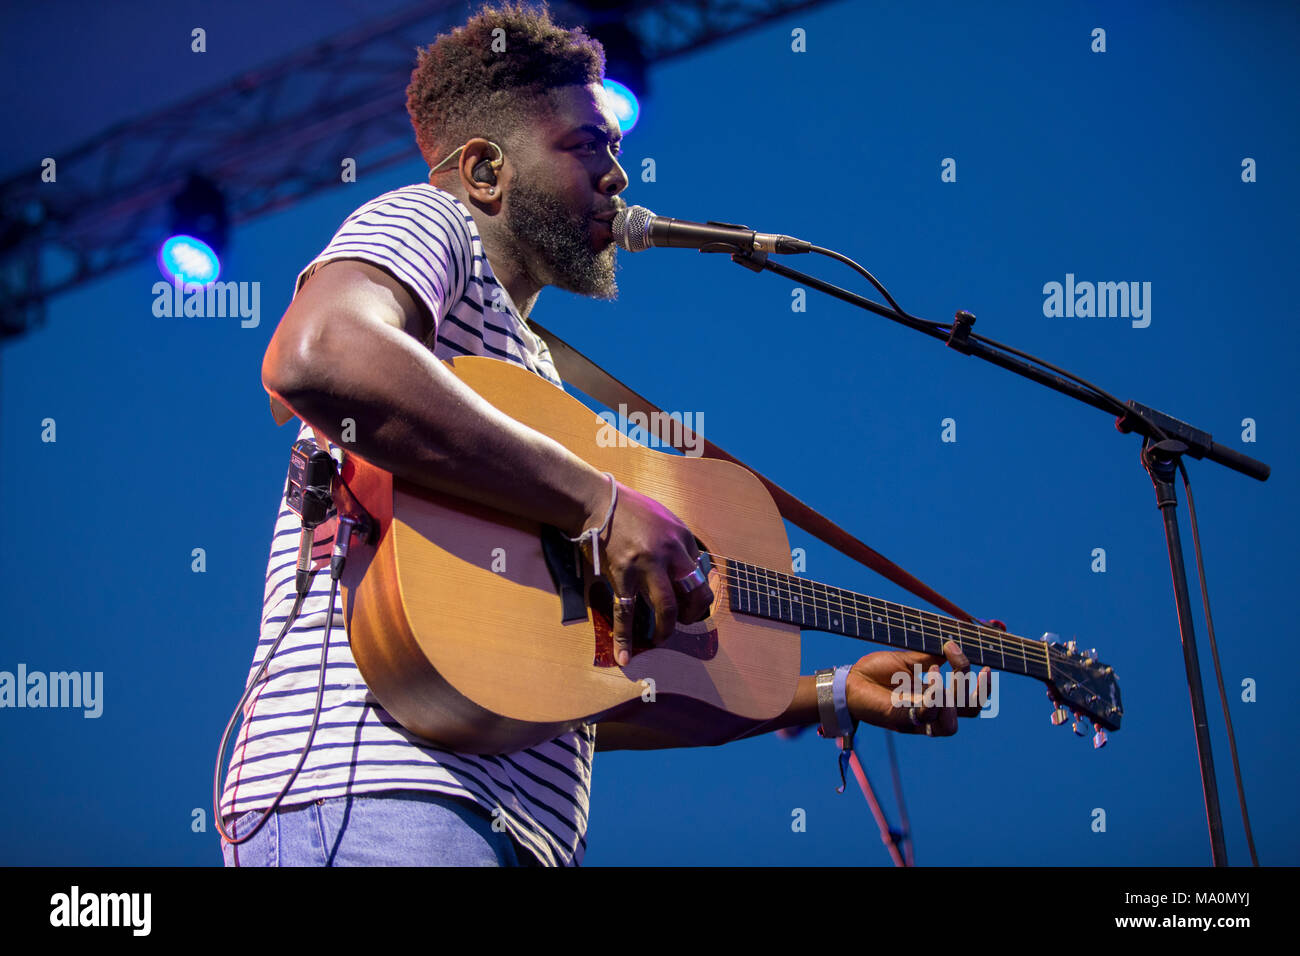 Jake Isaac and band performs during the Midem 2017, Cannes, France, June 6  2017 - Stock Image